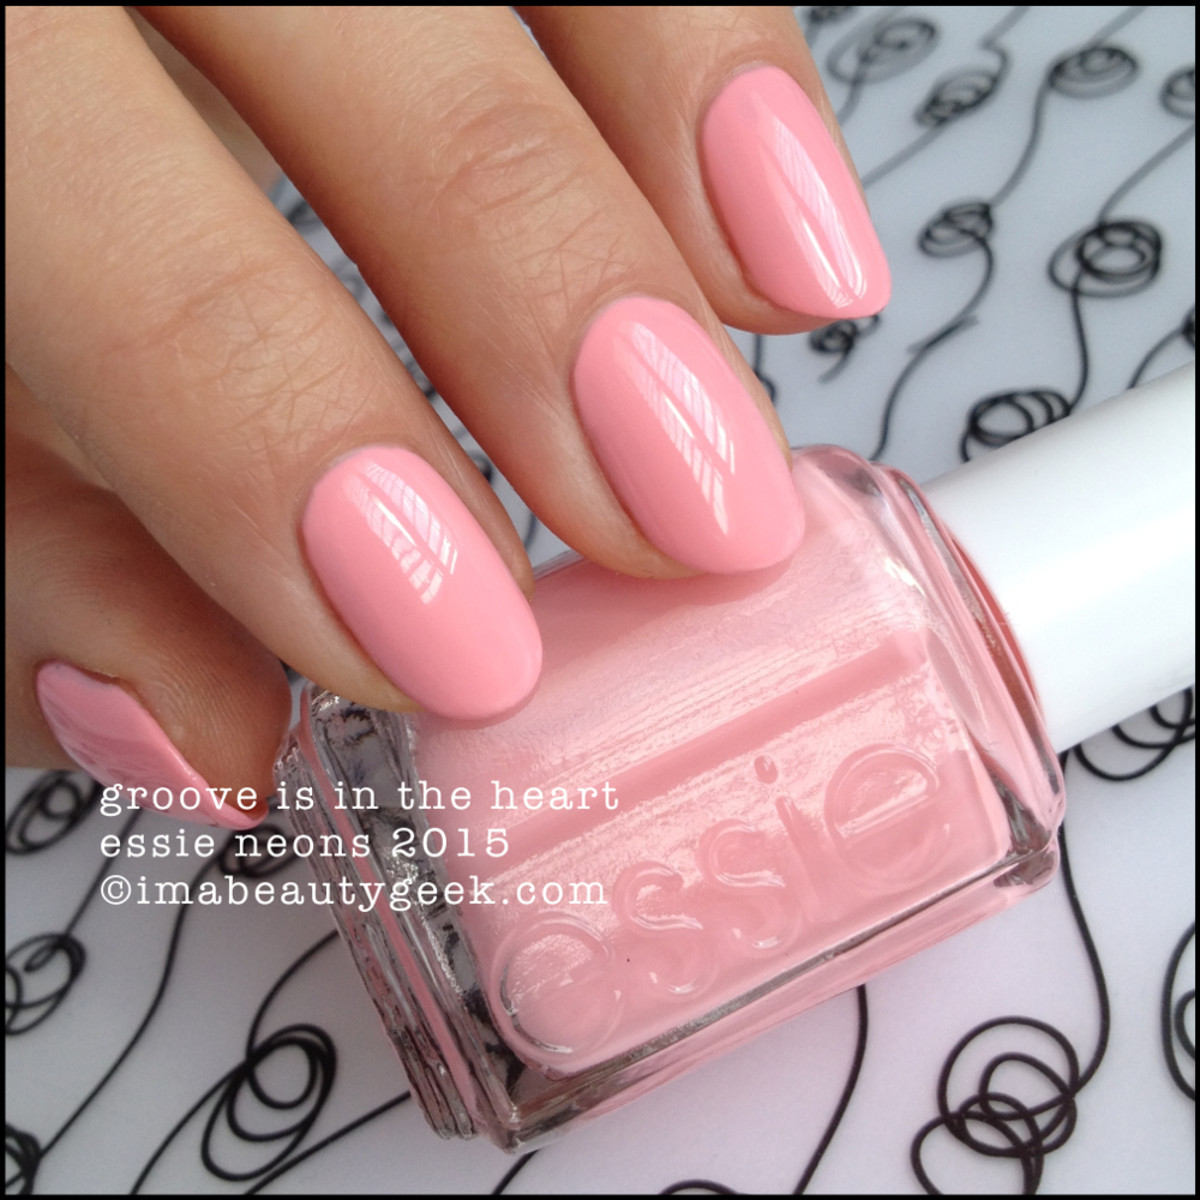 Essie Neons 2014 Groove is in the Heart Swatch_2